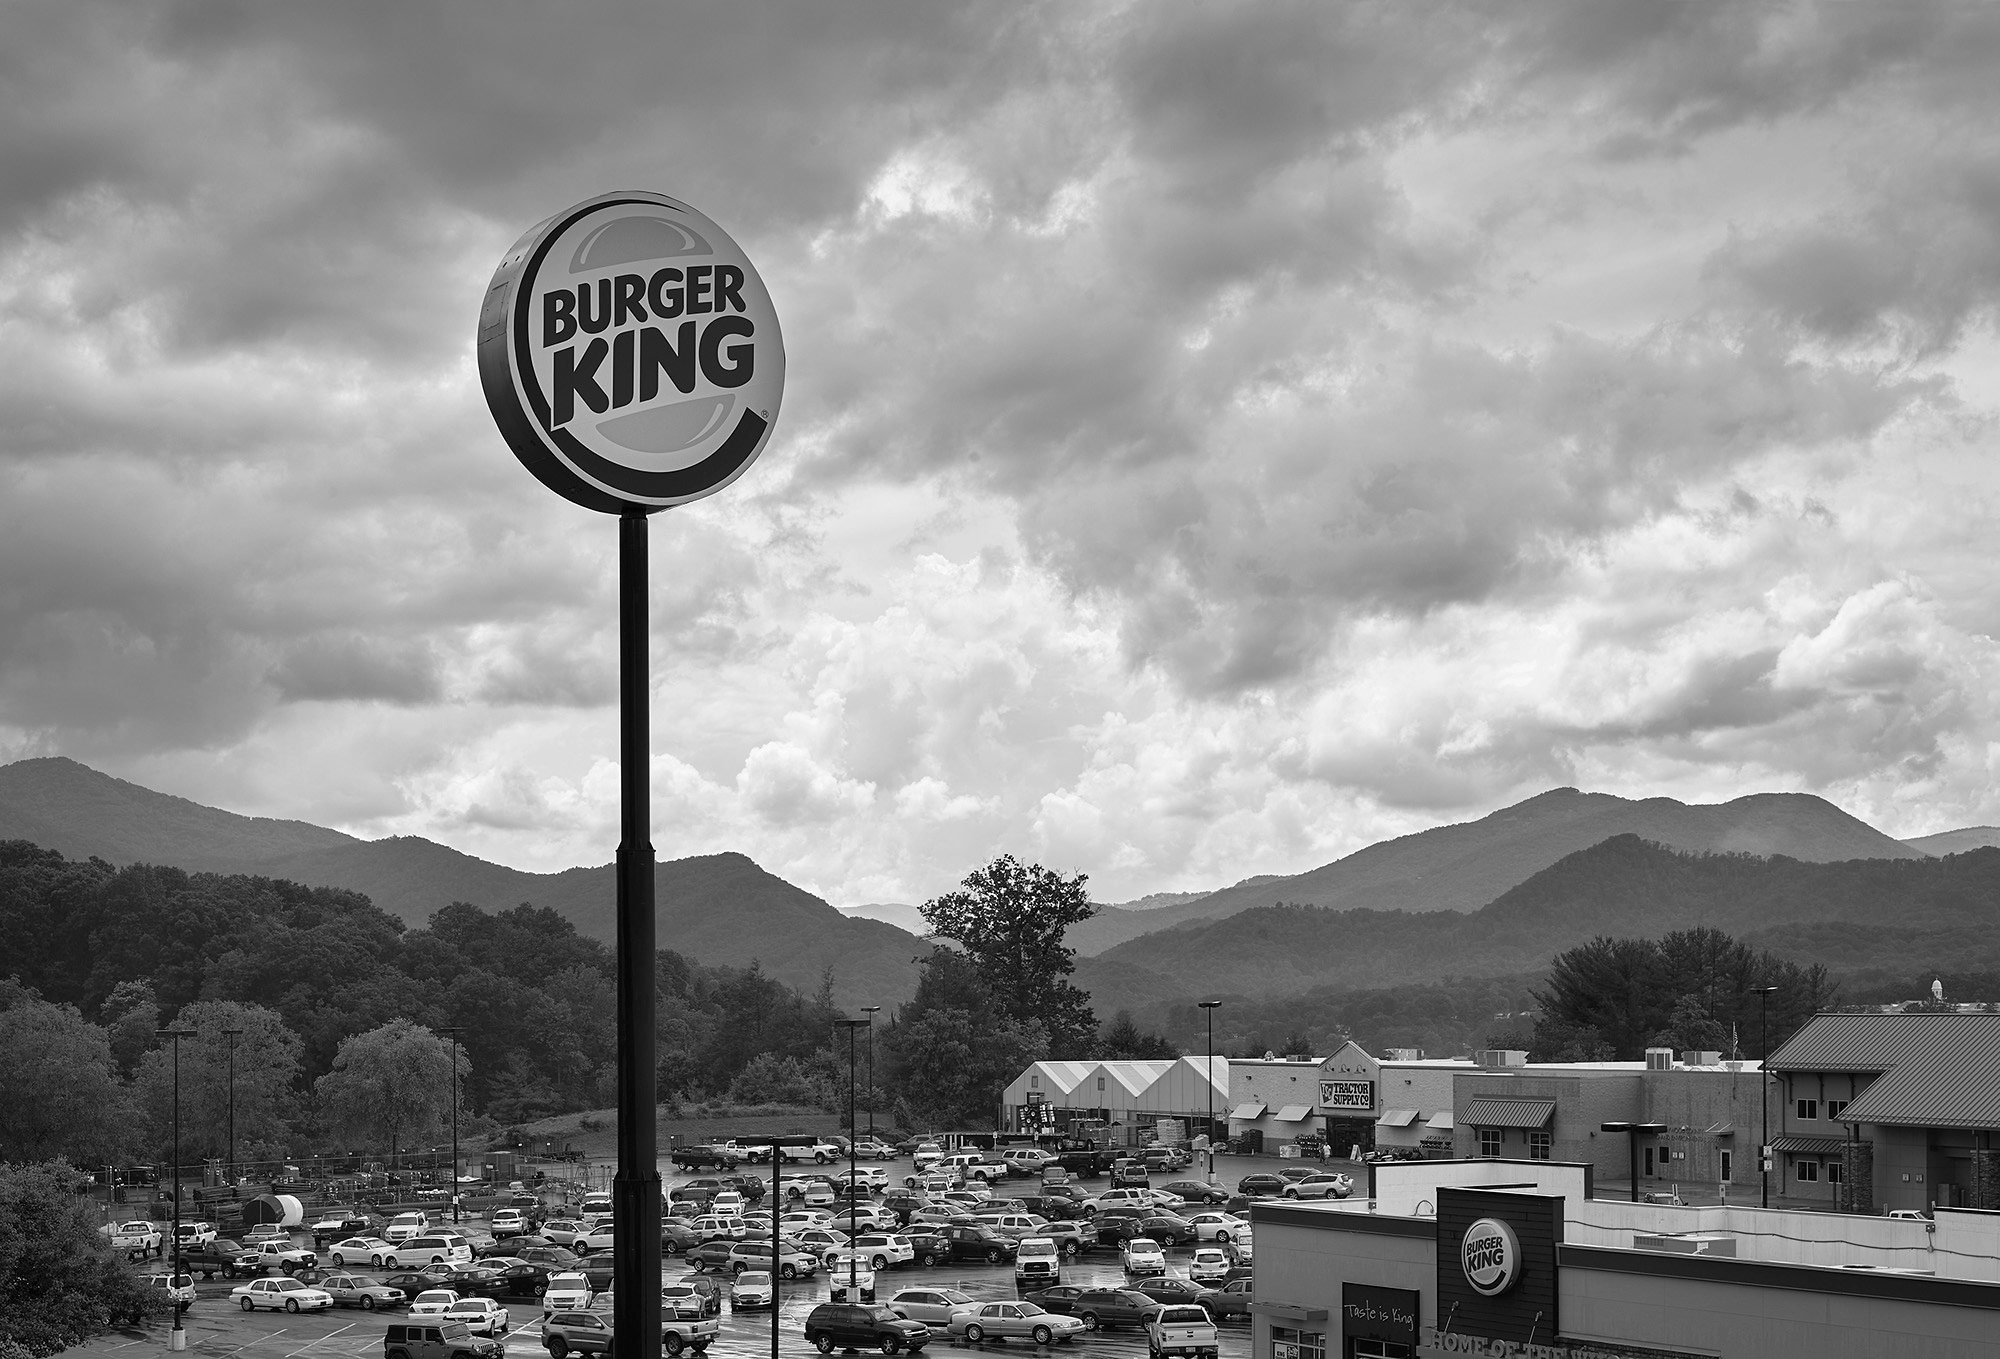 Burger King, Lake Side Plaza, Clyde, NC